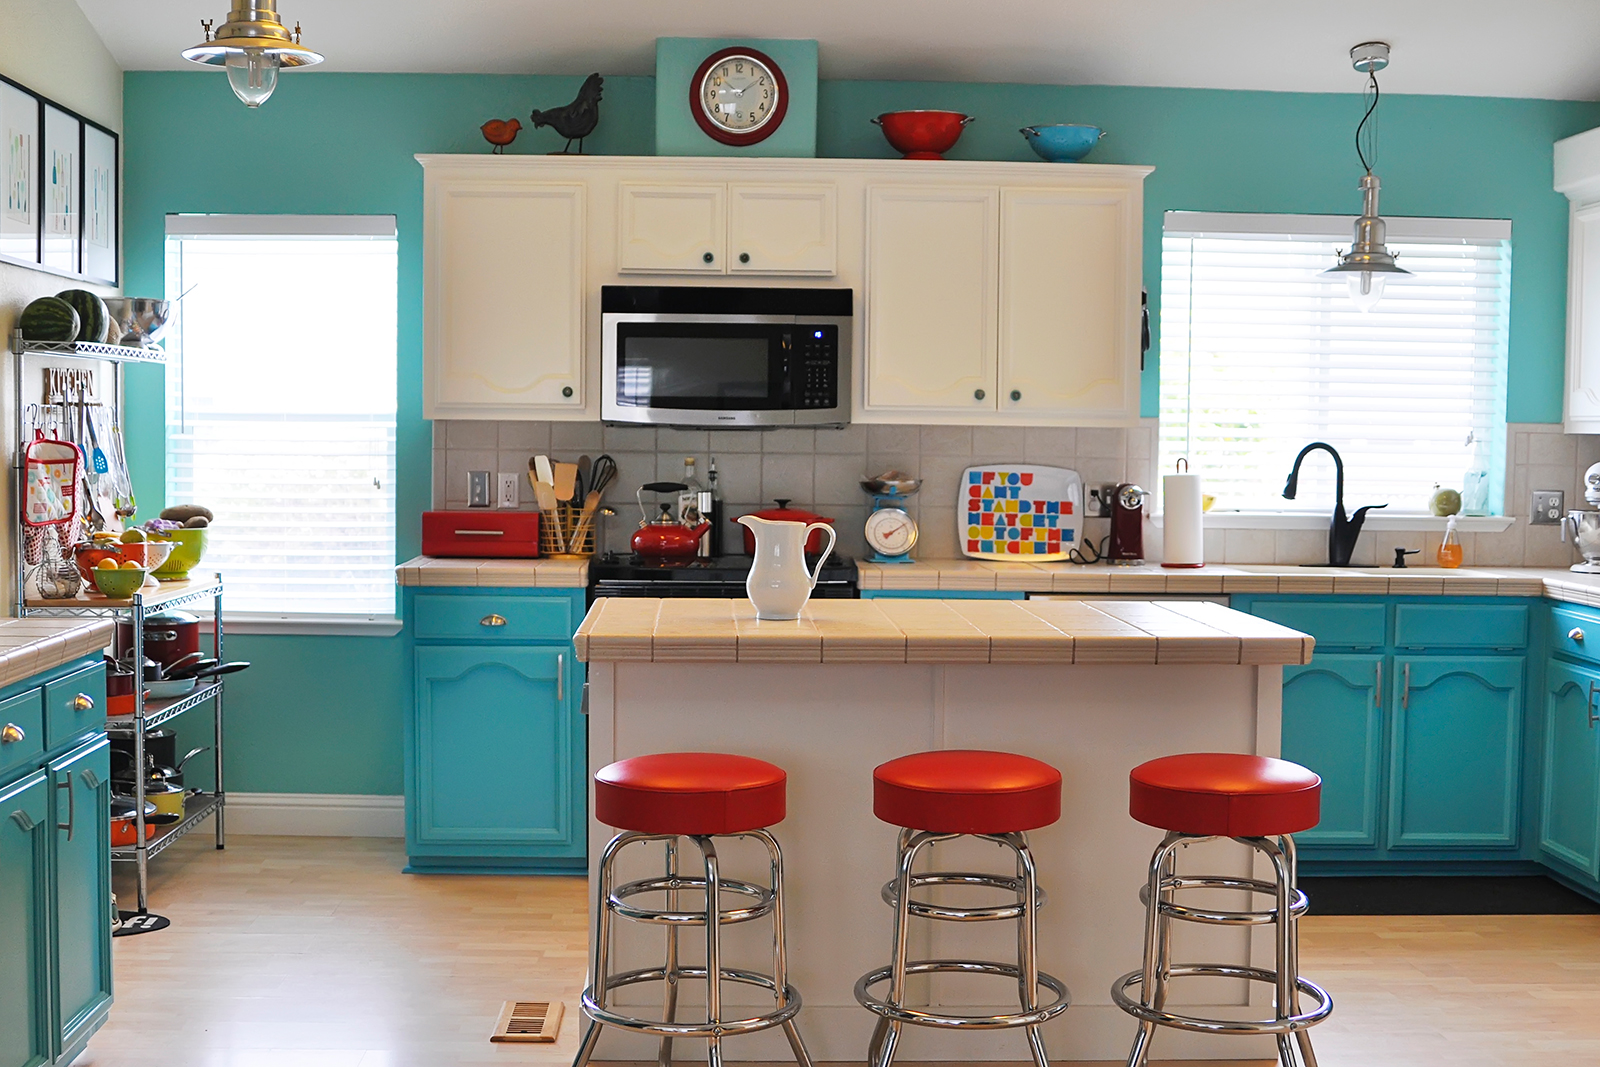 Fancy Kitchen Remodeling Decisions You ull Never Regret These ideas